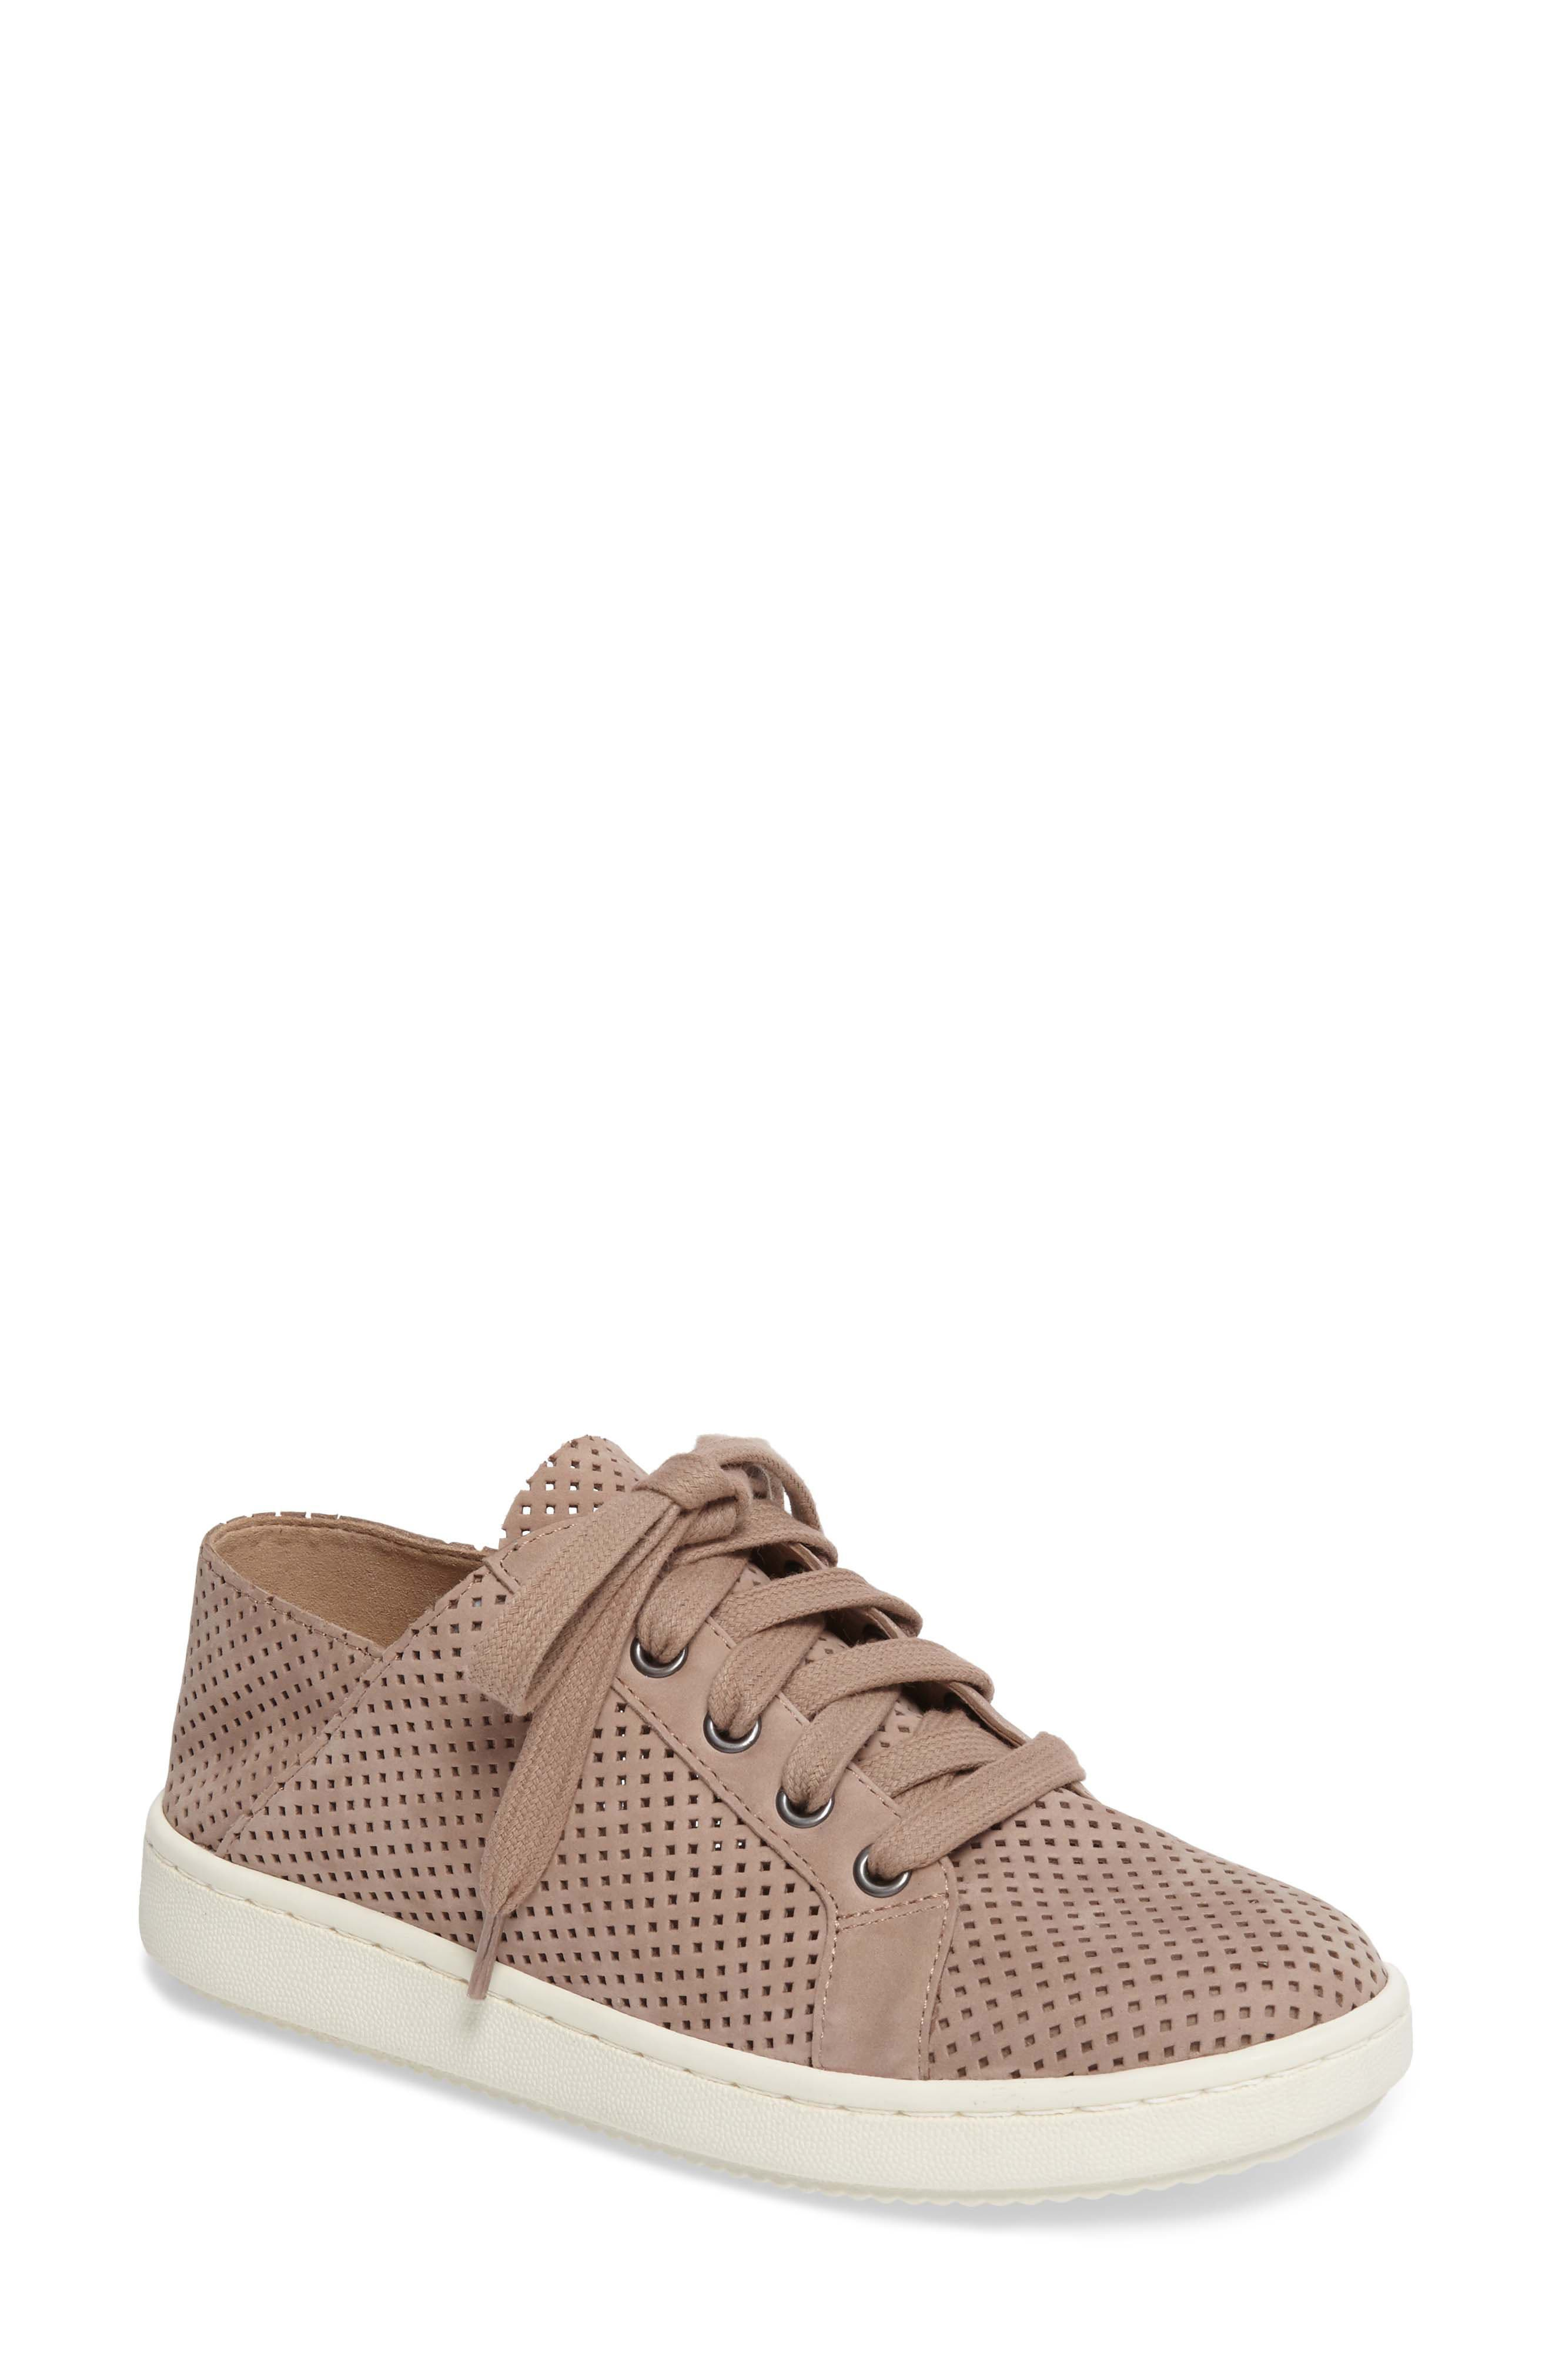 Clifton Perforated Sneaker,                         Main,                         color, Earth Perforated Leather